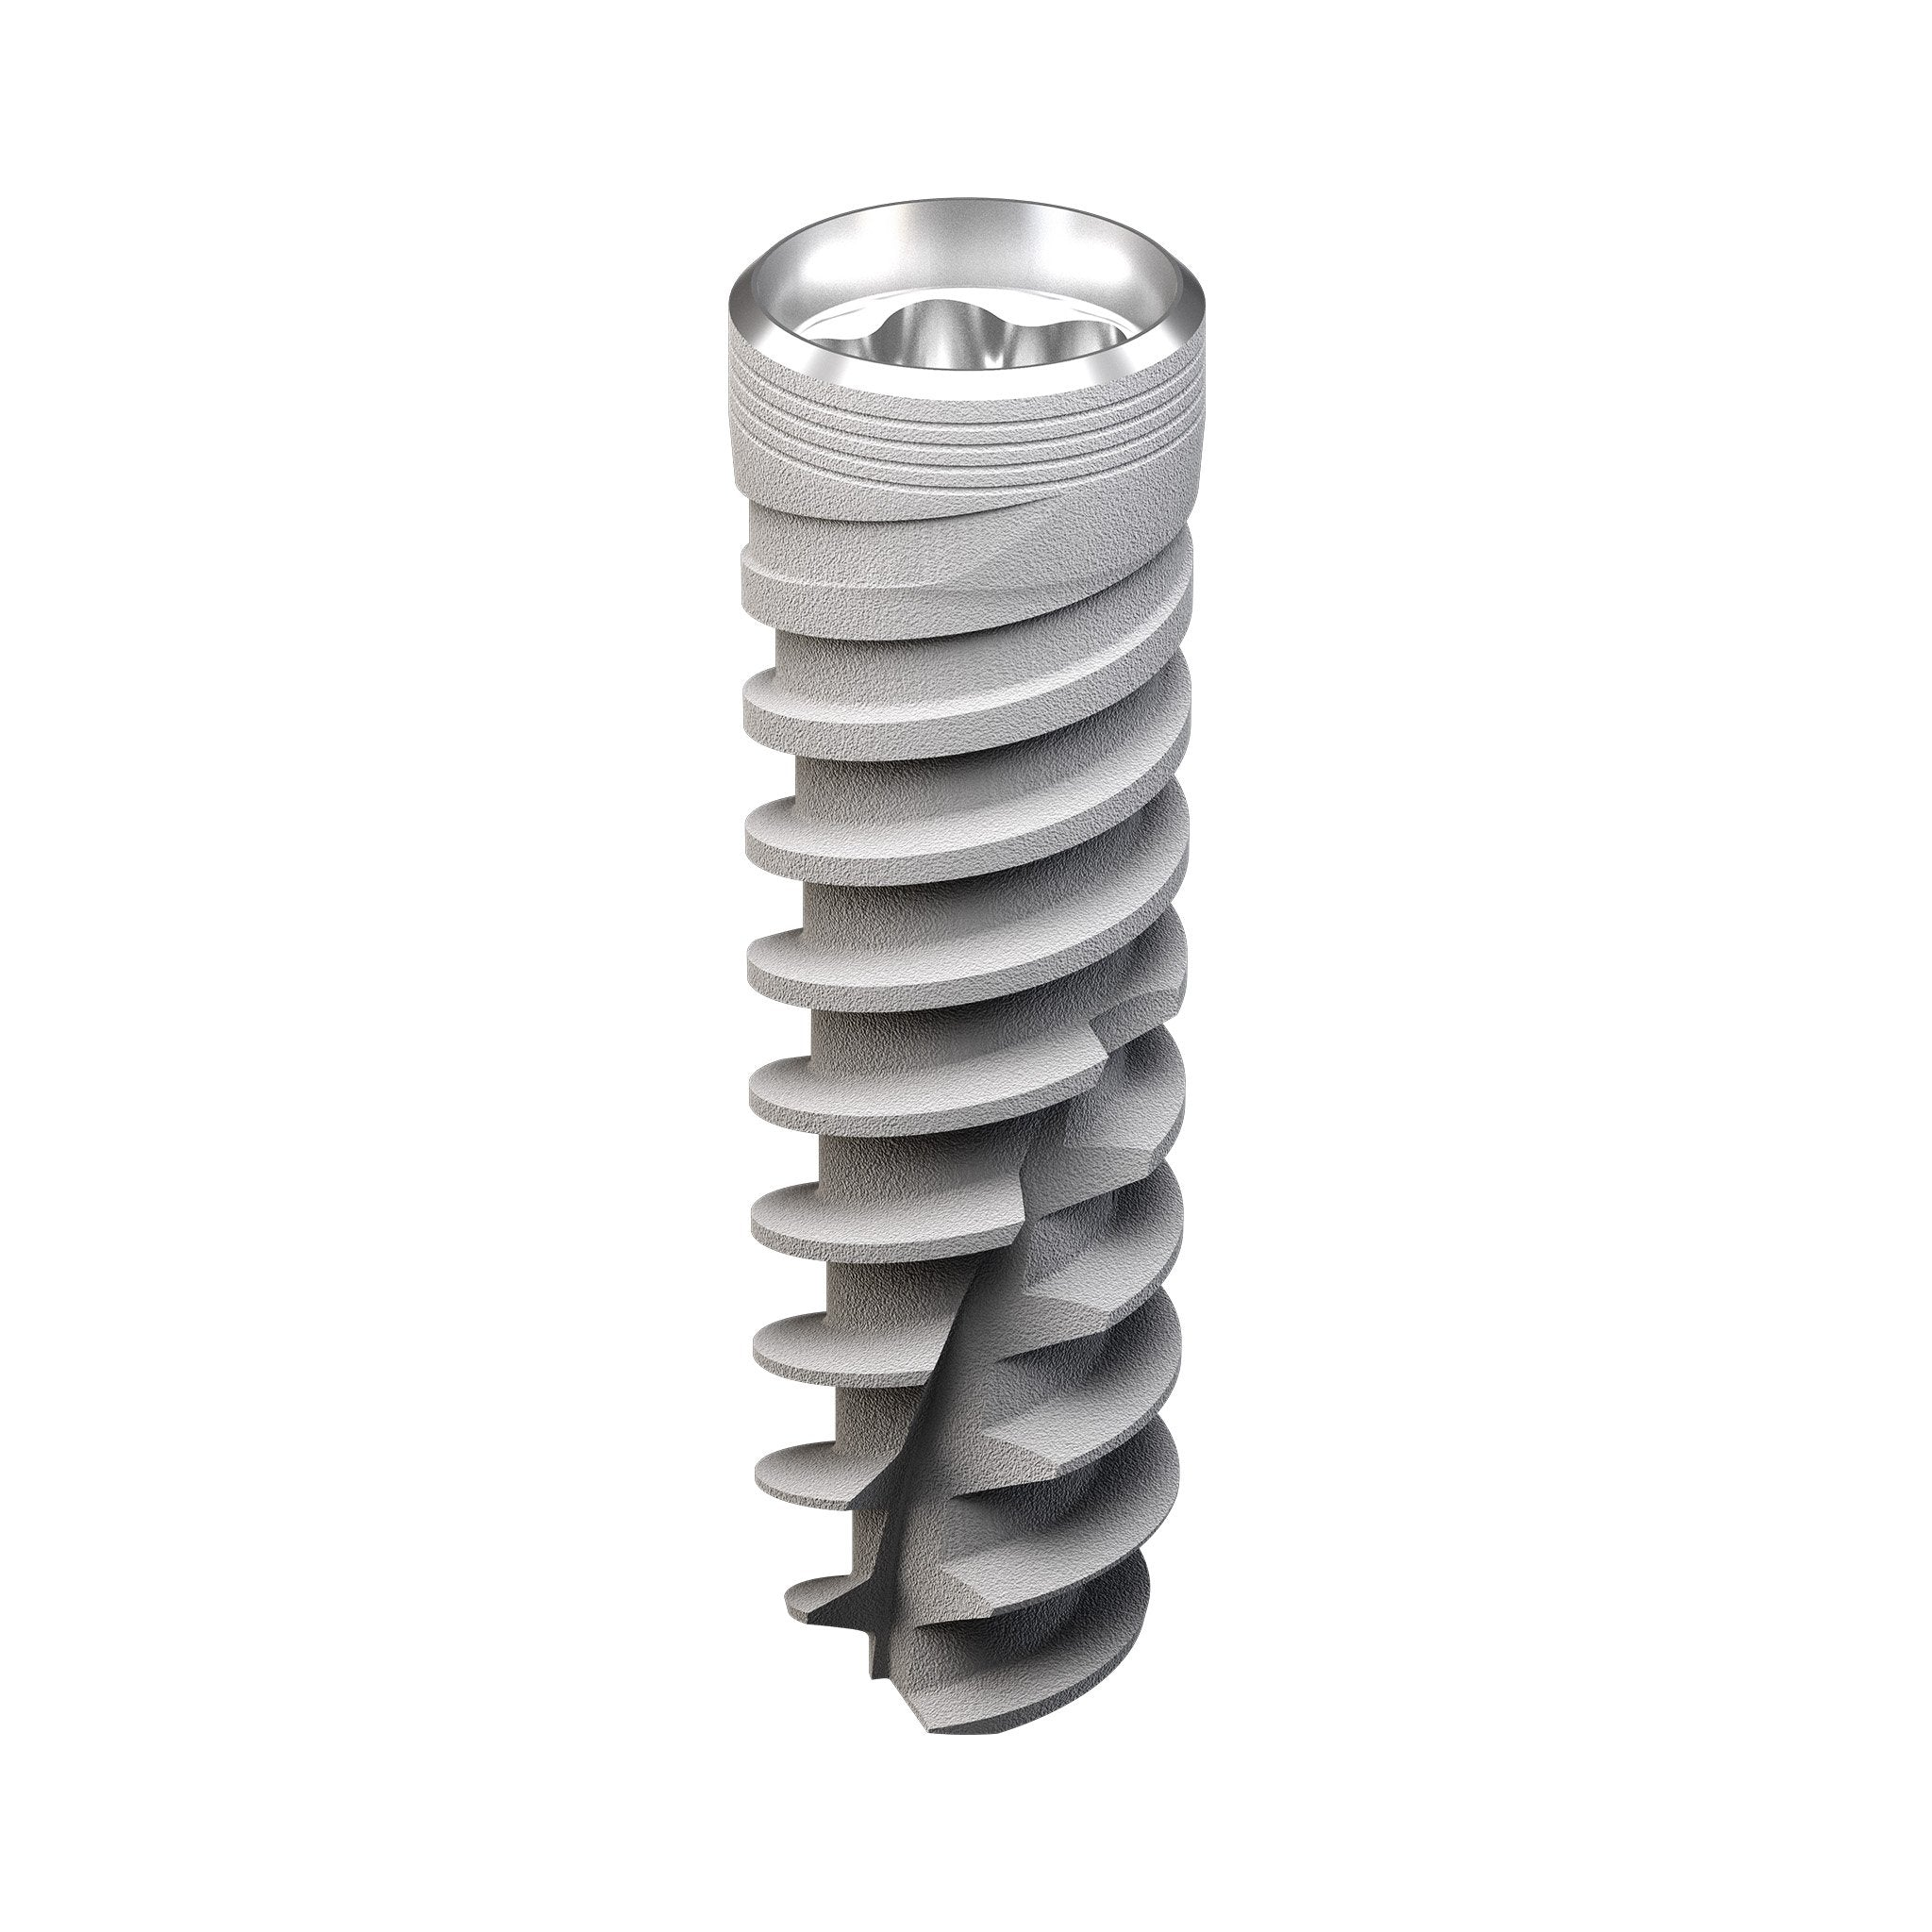 Prima Plus™ Implant WD Ø 5.0 x 11.5mm | K3